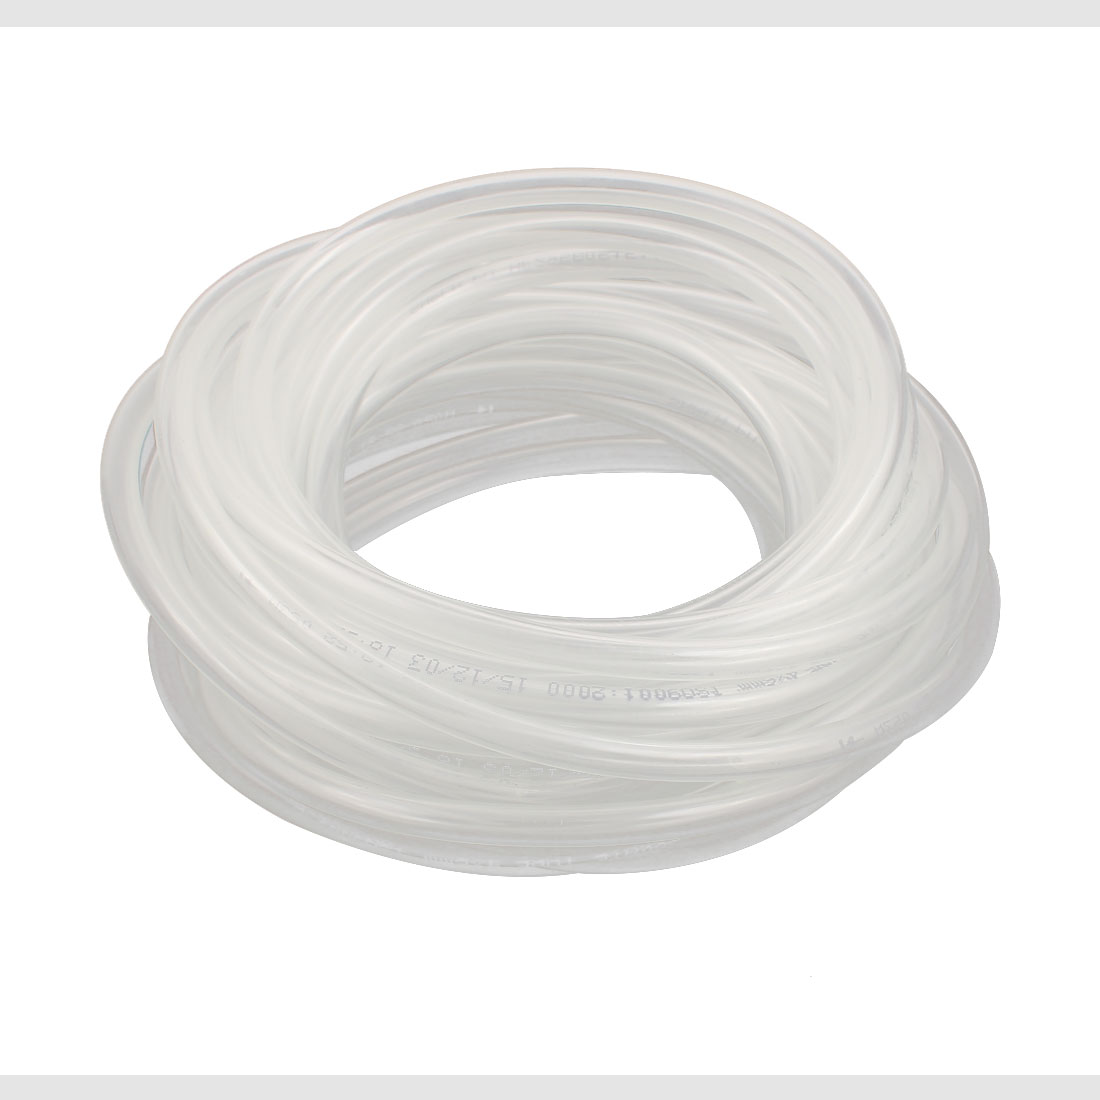 6mm x 4mm PU Flexible Pneumatic Air Tubing Pipe Hose Tube Clear 24.6Ft Long